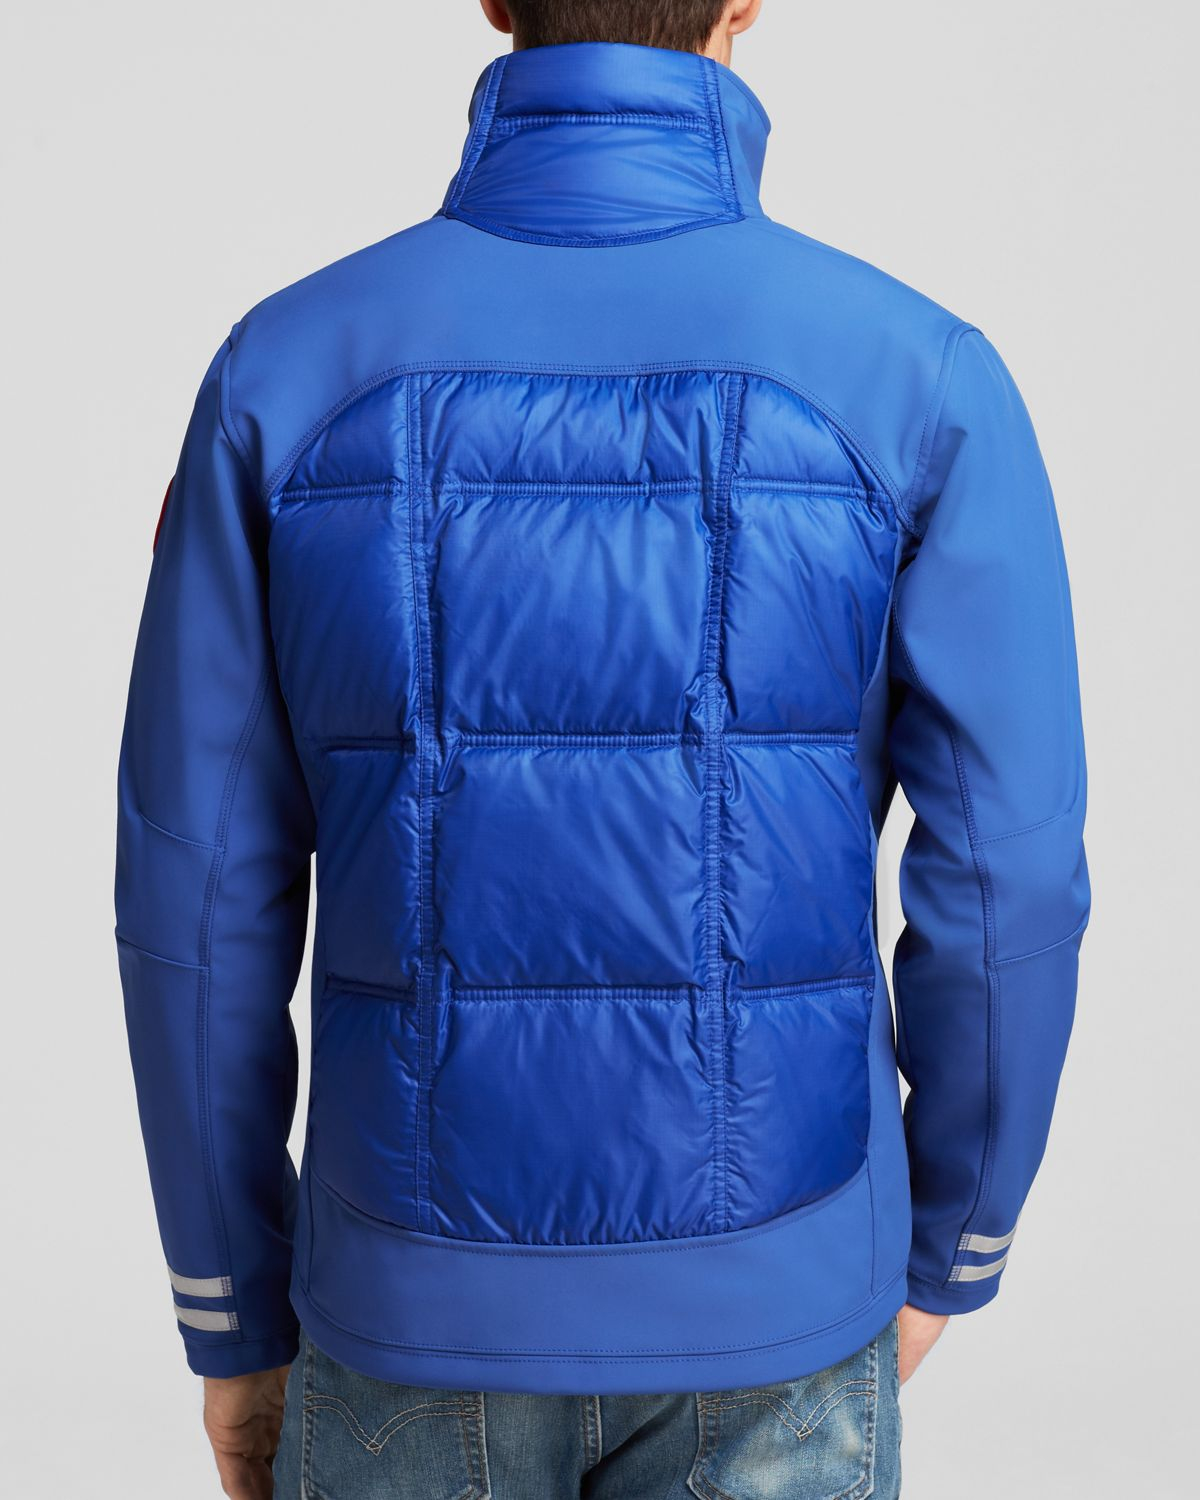 Canada Goose coats sale price - Canada goose Hybridge Jacket in Blue for Men (Pacific Blue) | Lyst